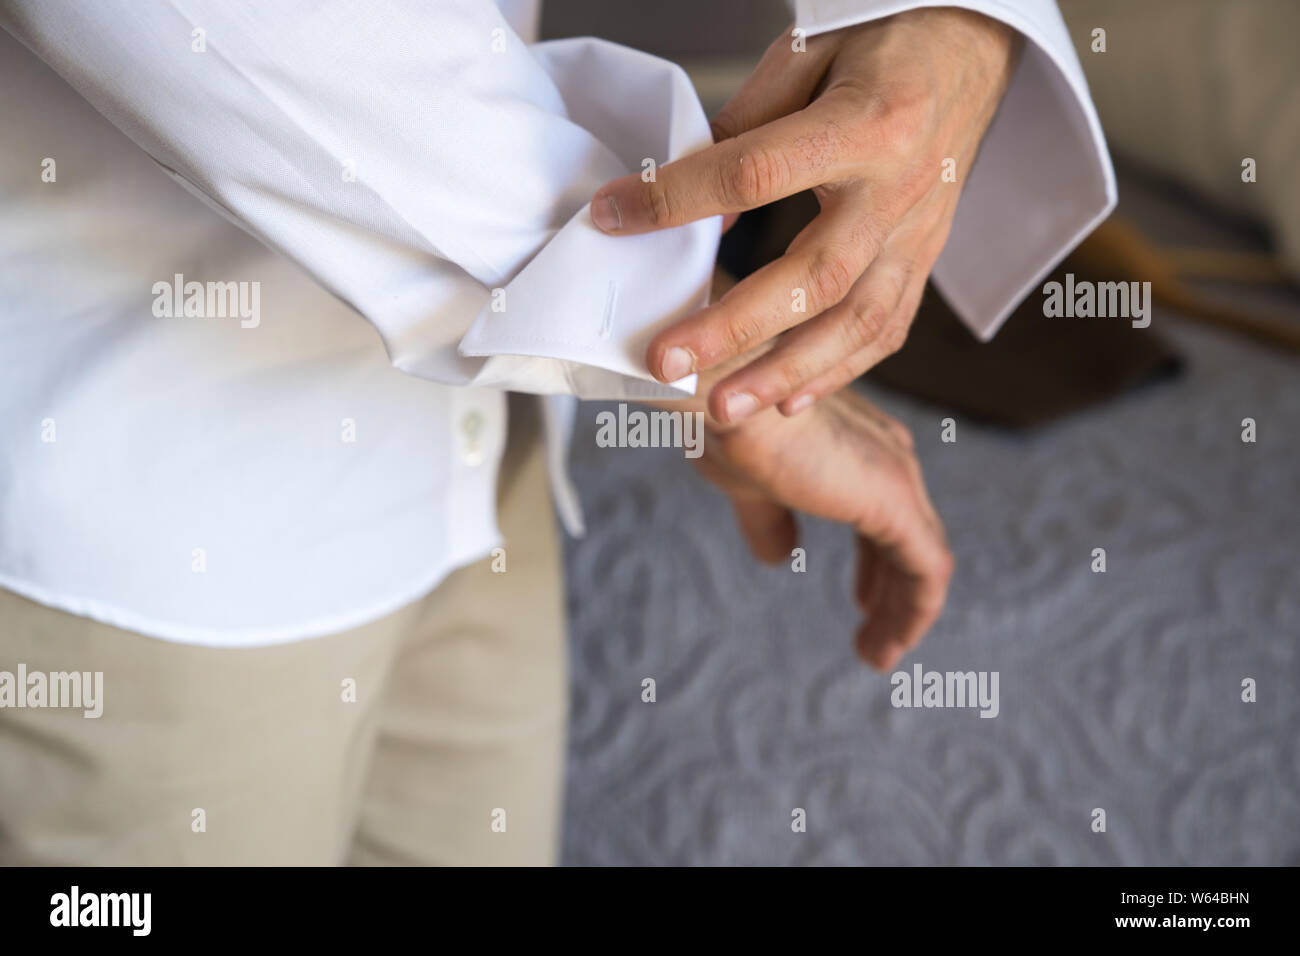 Pre Wedding Preparations. Groom getting ready for wedding ceremony. Greek, Cypriot wedding traditions Stock Photo